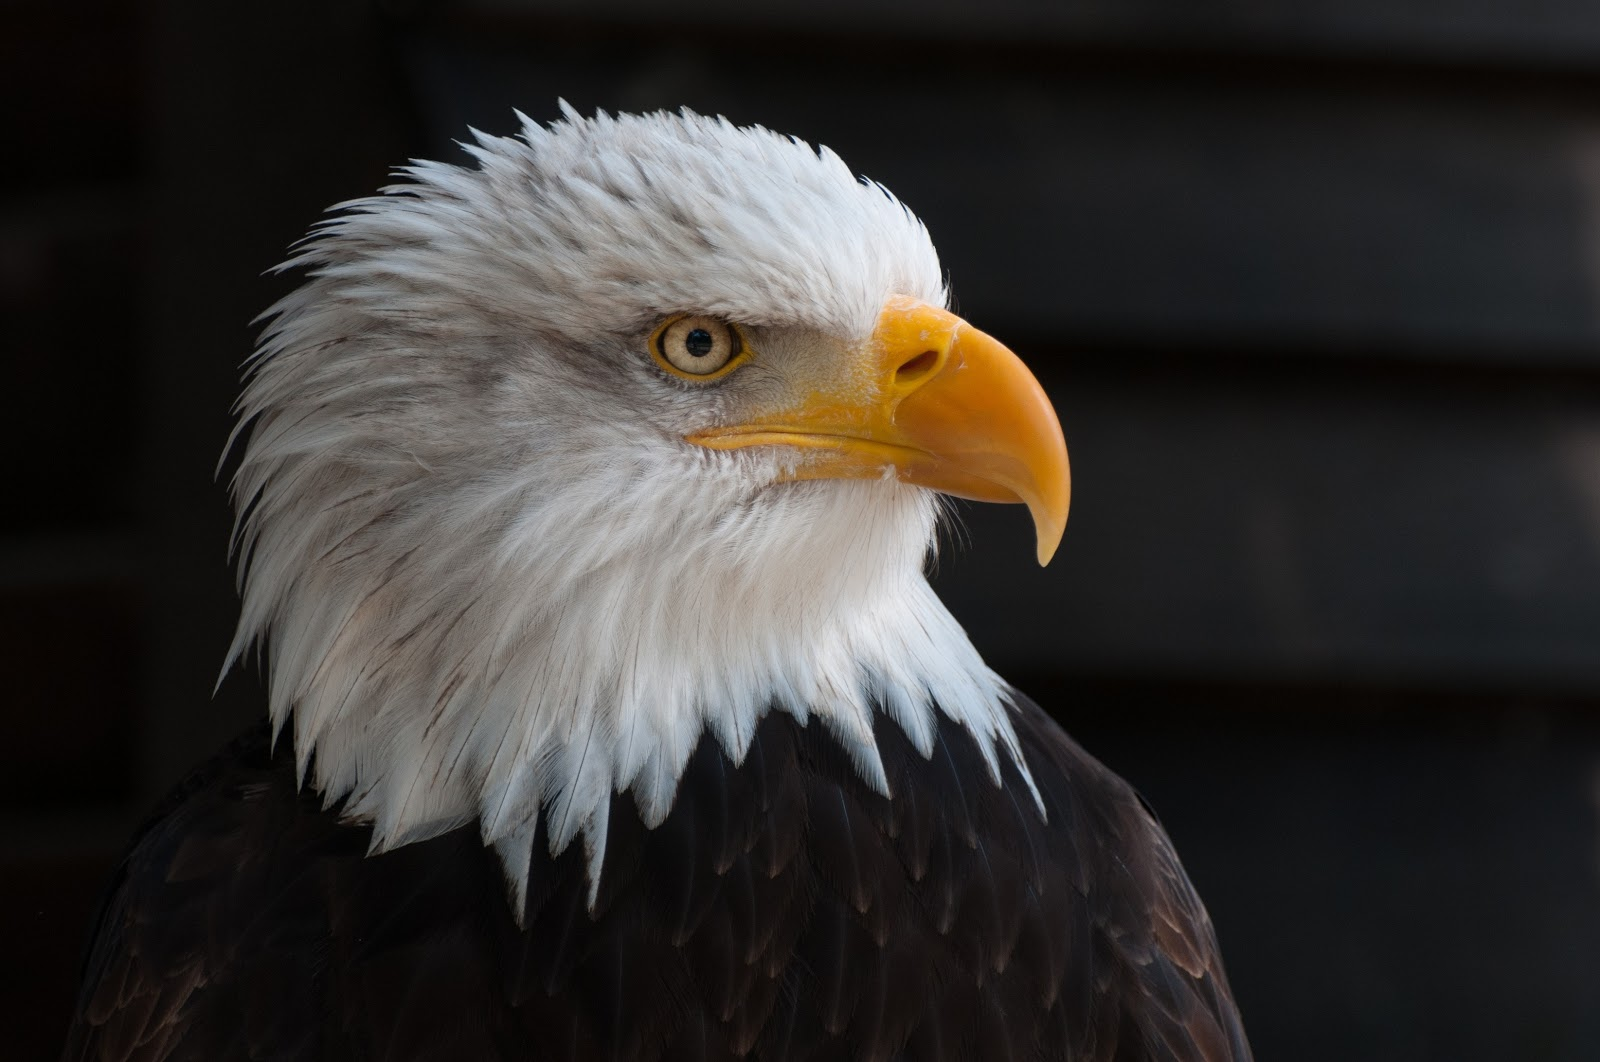 usa-bald-eagle-portrait-close-birds-pictures